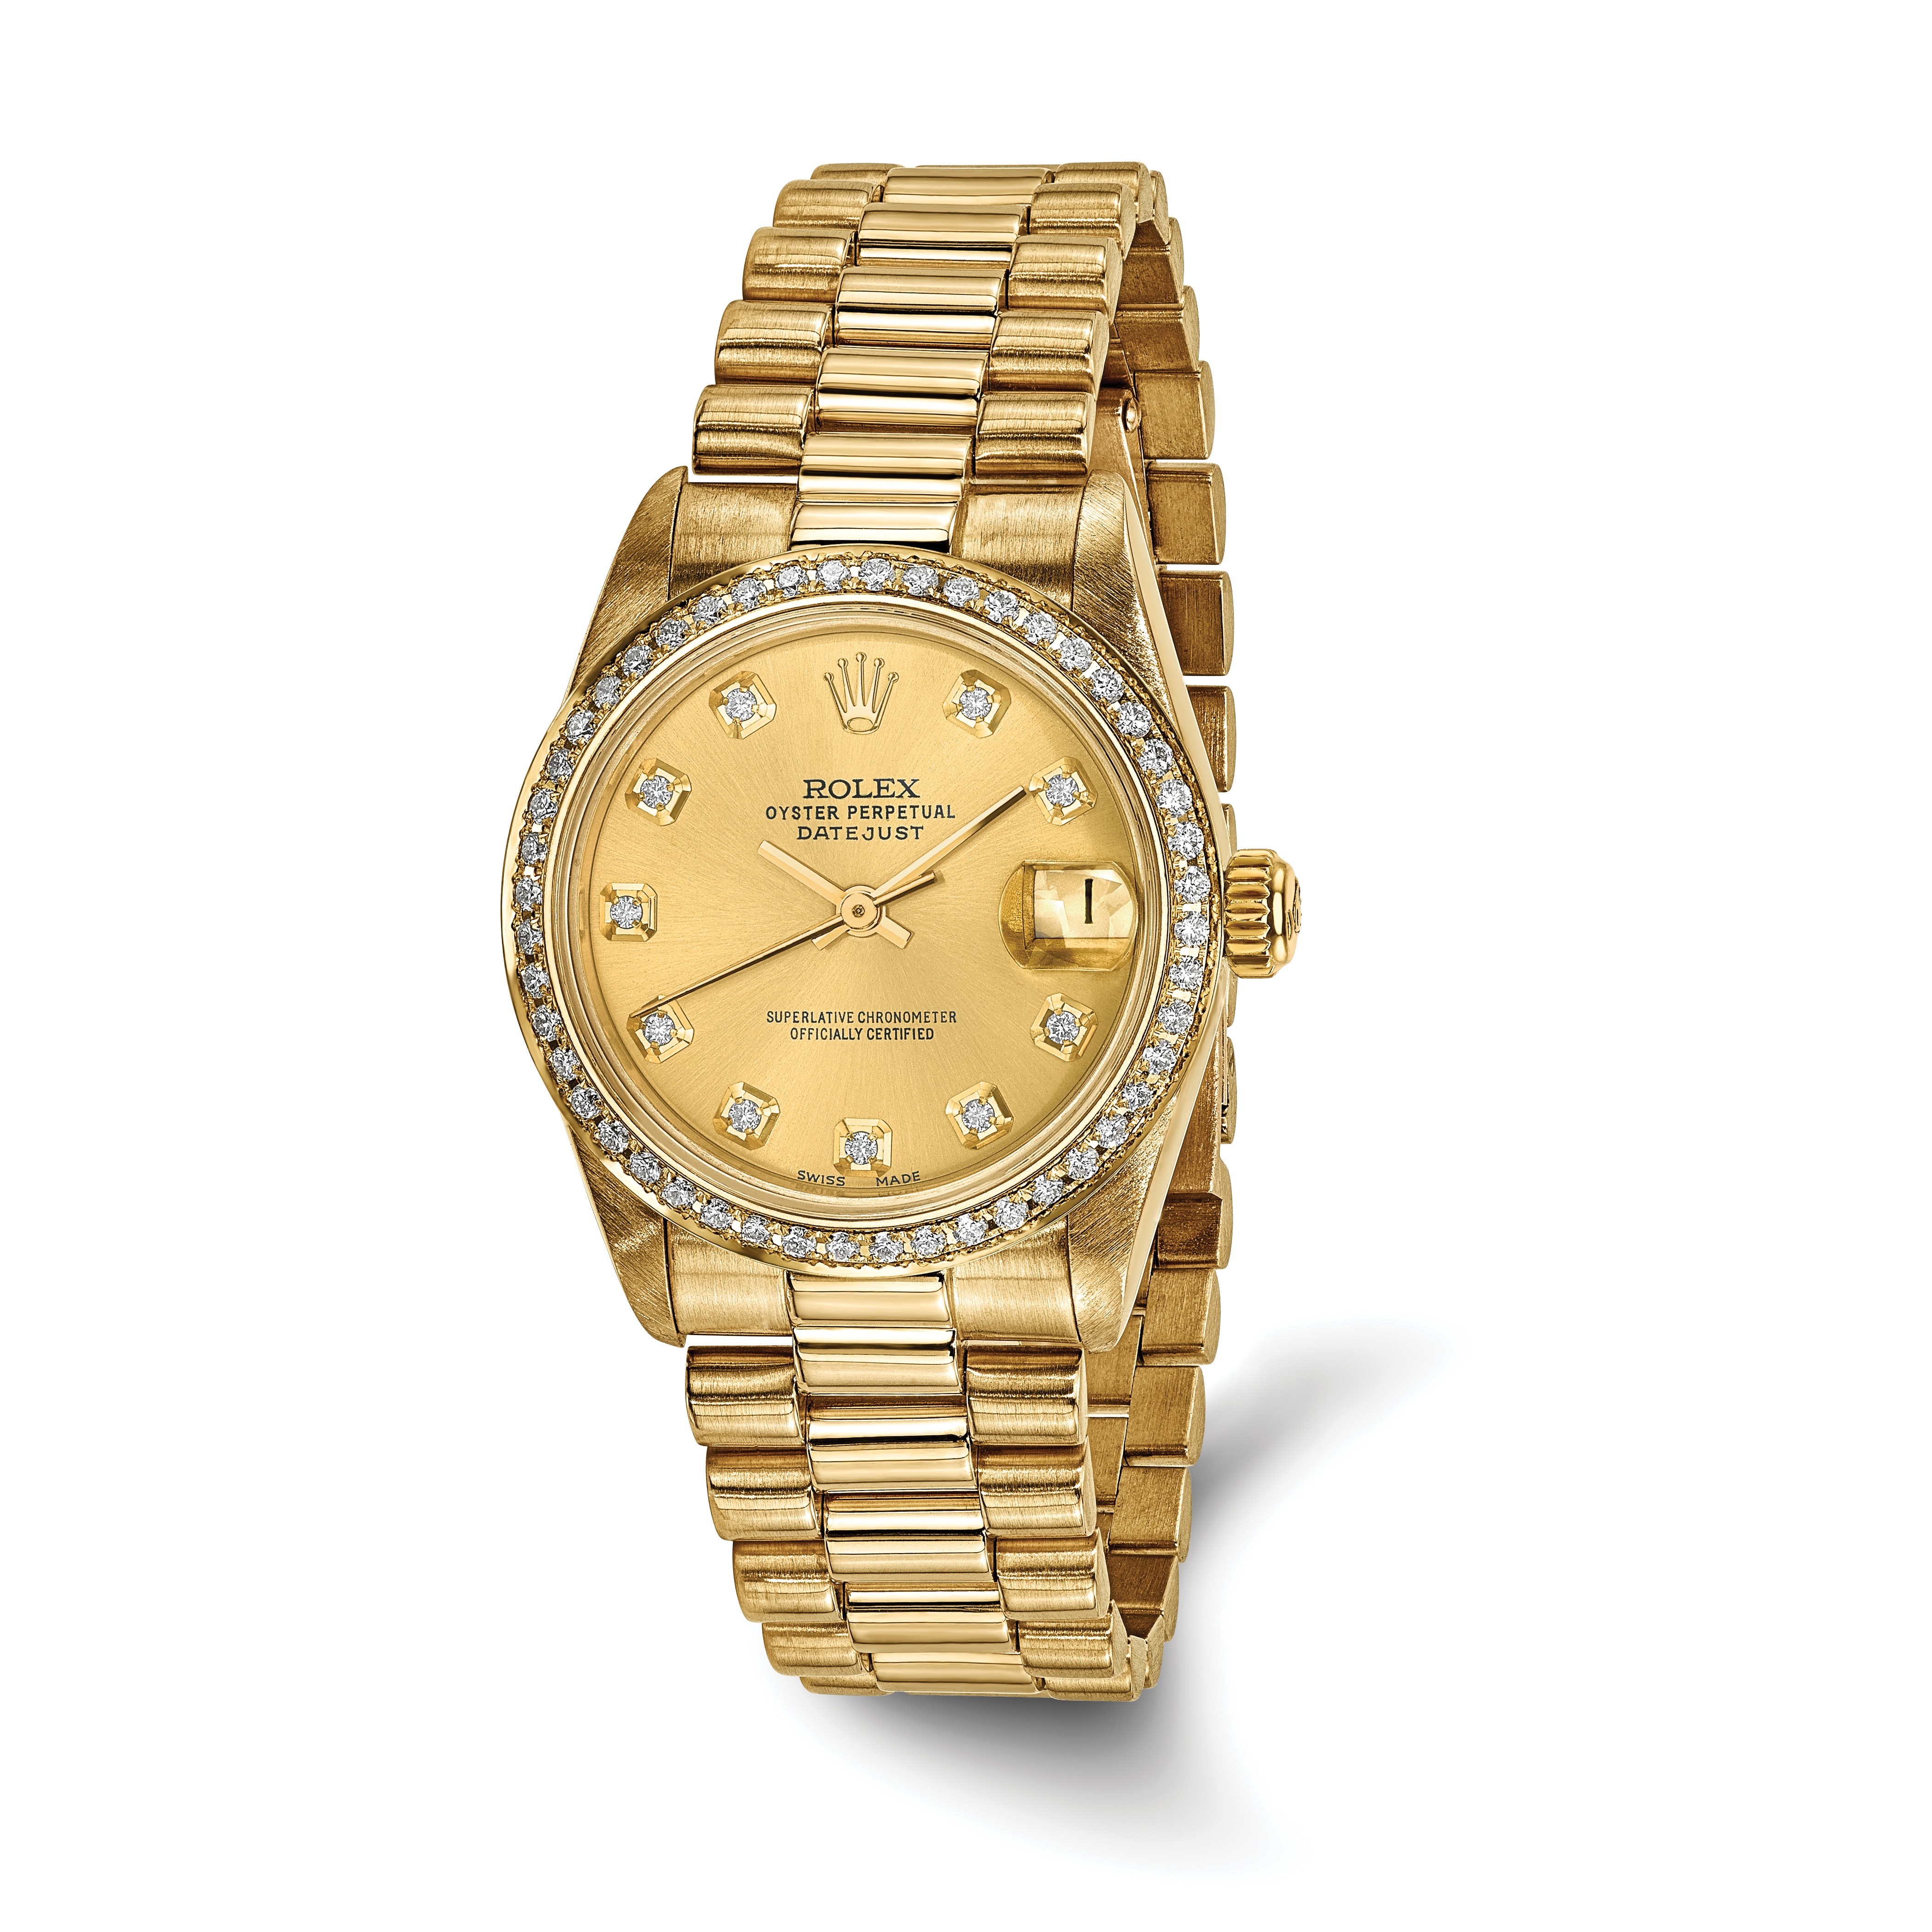 Pre-owned Rolex 18k Gold Midsize Datejust Diamond Presidential Watch